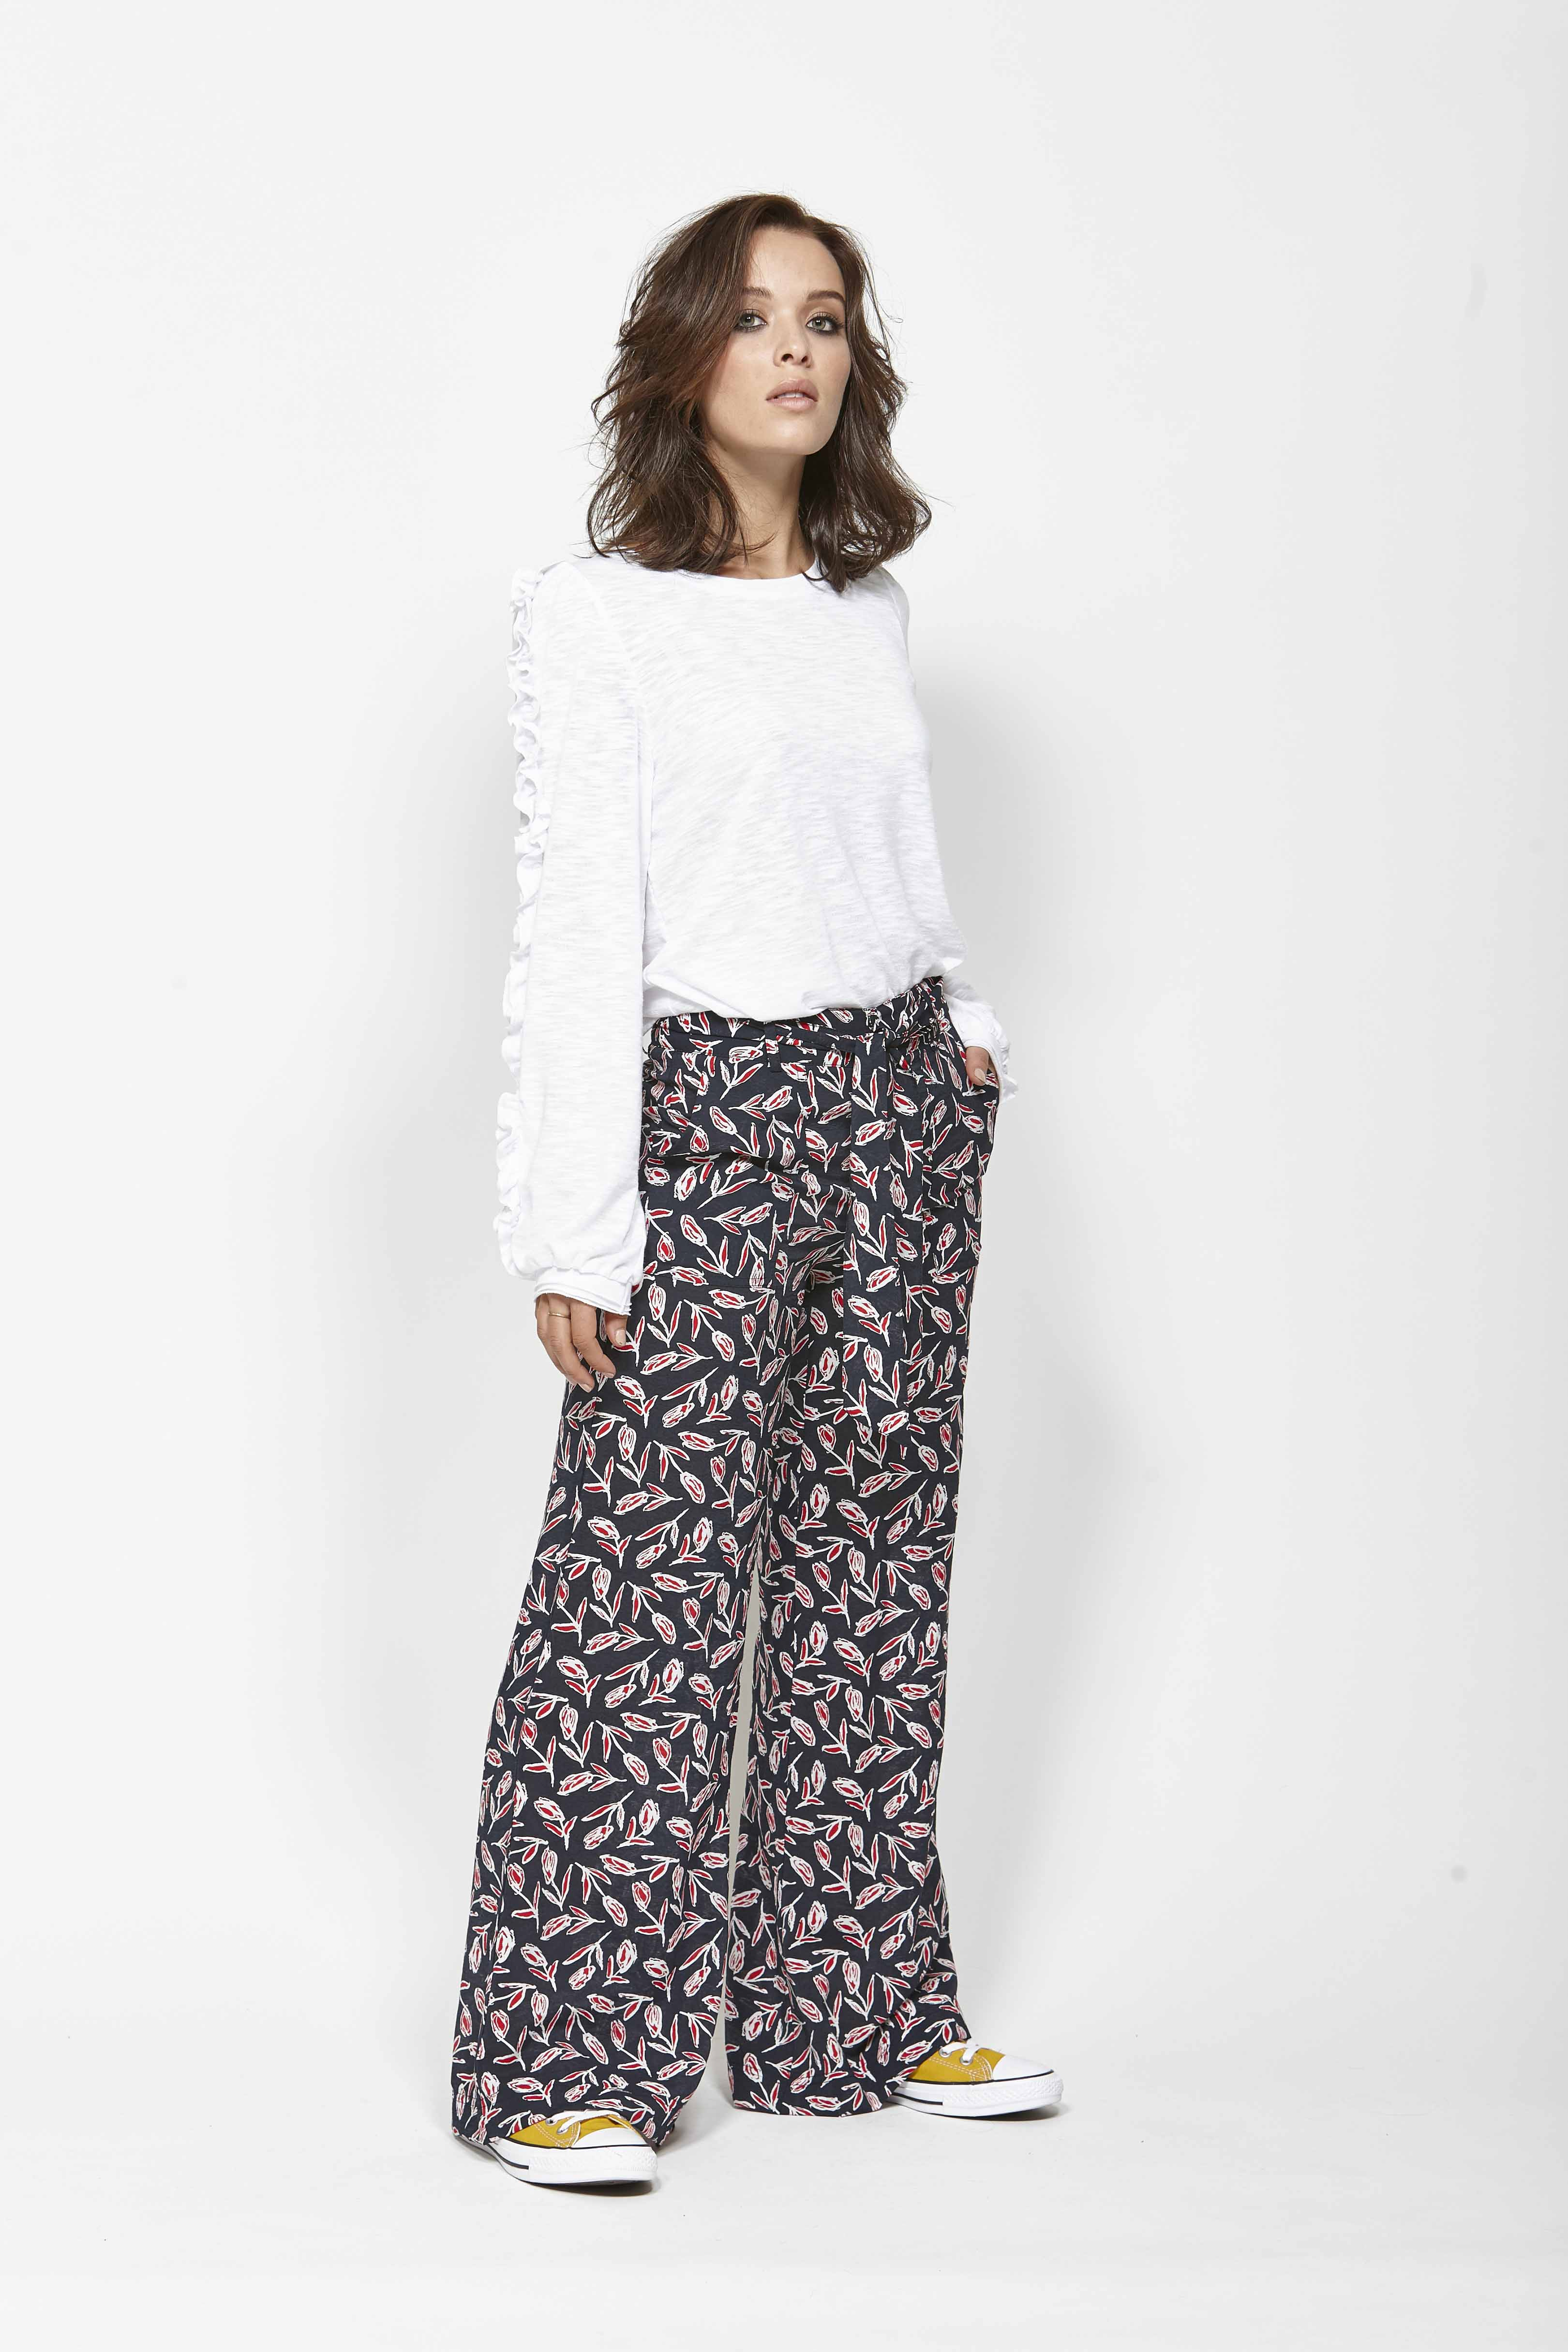 LEO+BE LB1375 Ruffle Tee, RRP$115.00 & LEO+BE LB1381 Forward Pant, RRP$159.00